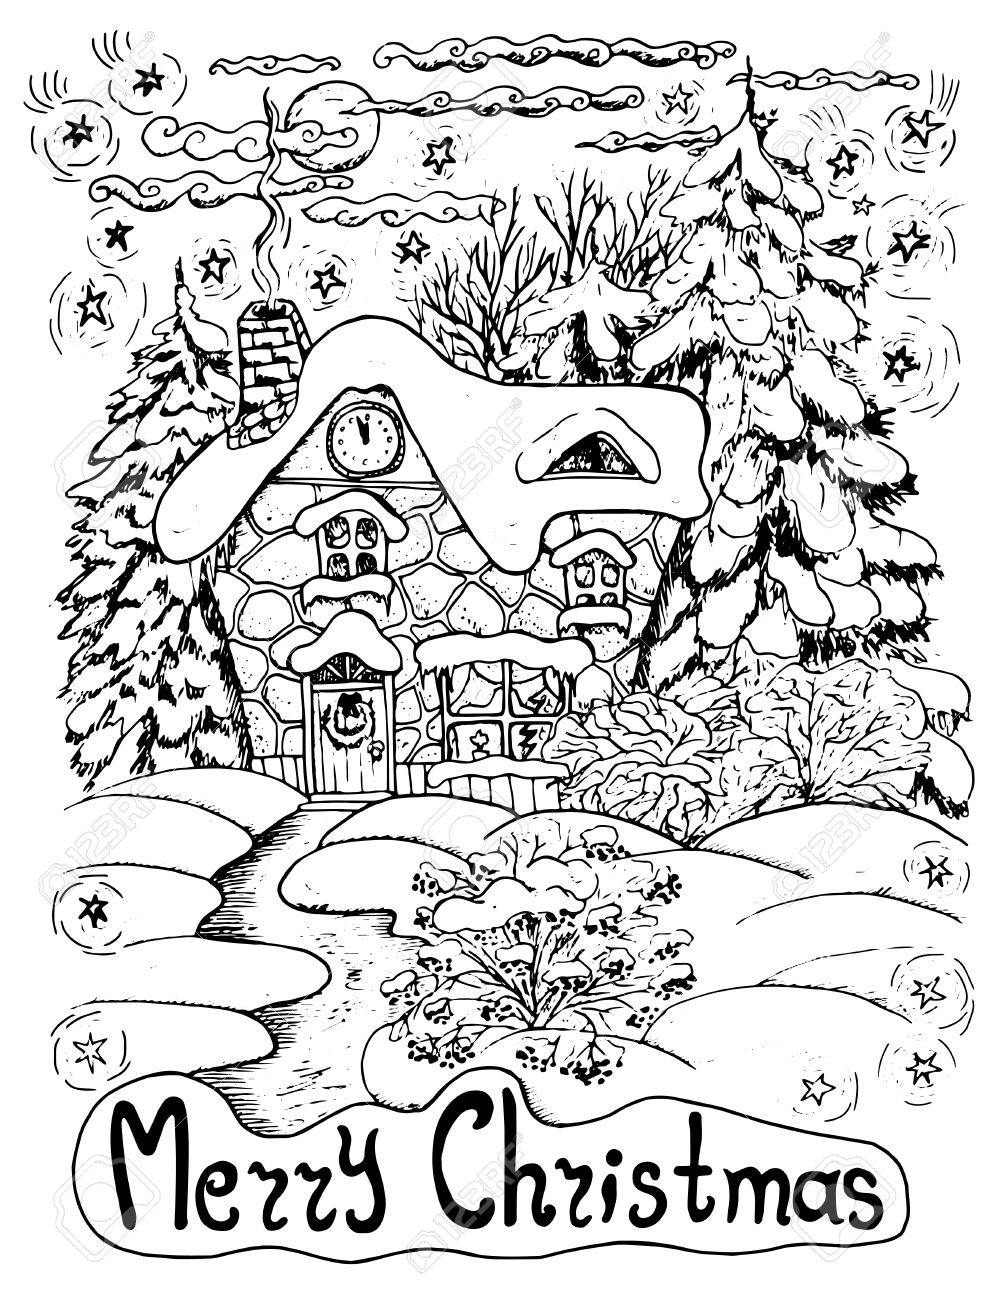 Black And White Christmas Card With A House And Conifers In Snow ...